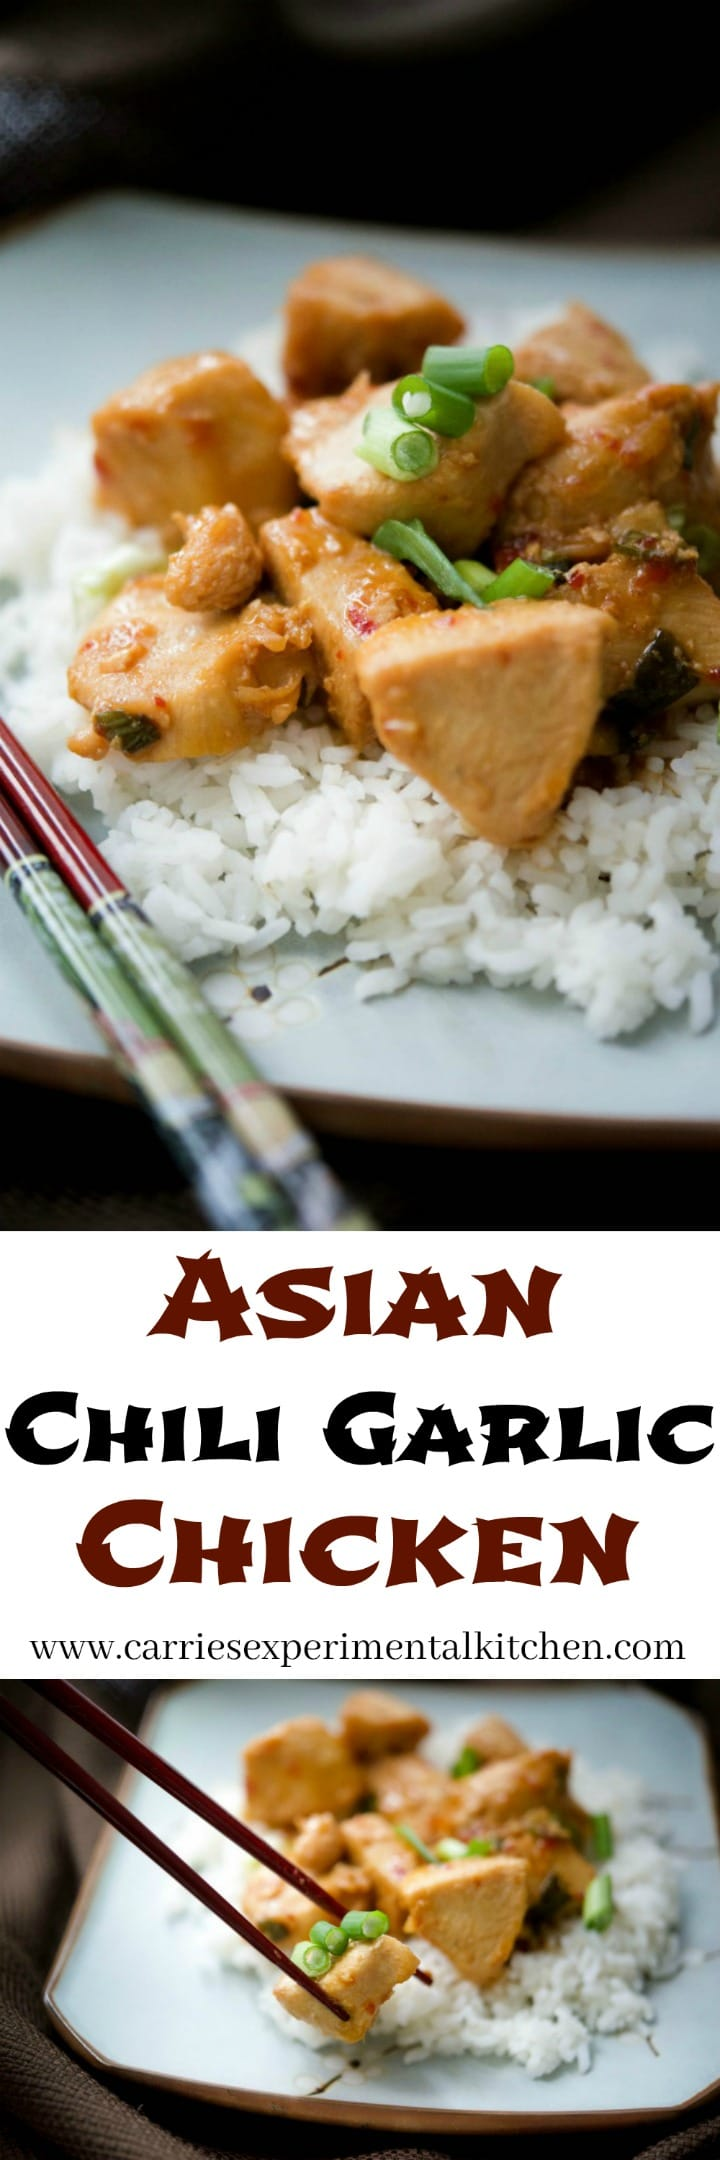 Asian Chili Garlic Chicken made with boneless chicken breasts pan seared and tossed with a chili, soy, honey and garlic sauce is a quick and delicious weeknight meal. #chicken #asianfood #dairyfree #30minutemeals